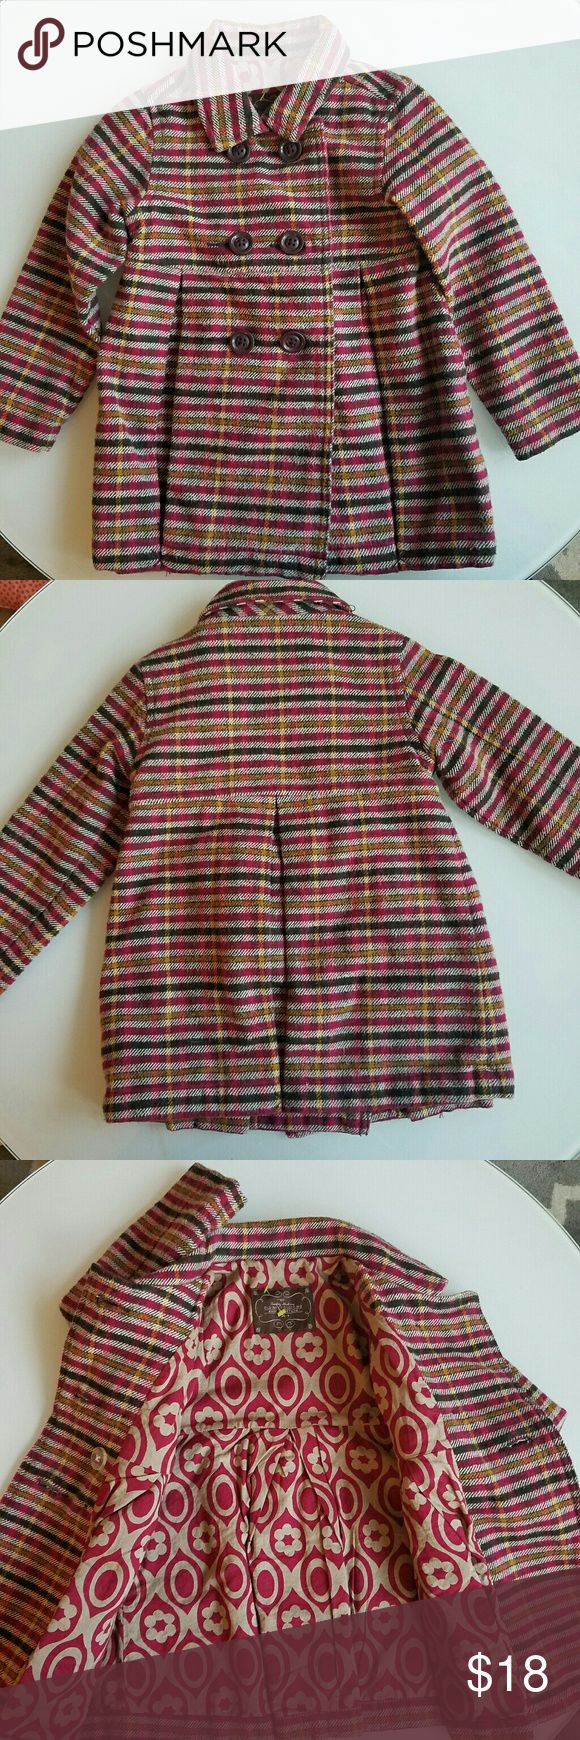 OLD NAVY GIRLS PEACOAT SIZE 3T So darling. This is a striped peacoat. Double breasted button coat. Great for spring! Size 3T Brand: Old Navy Old Navy Jackets & Coats Pea Coats